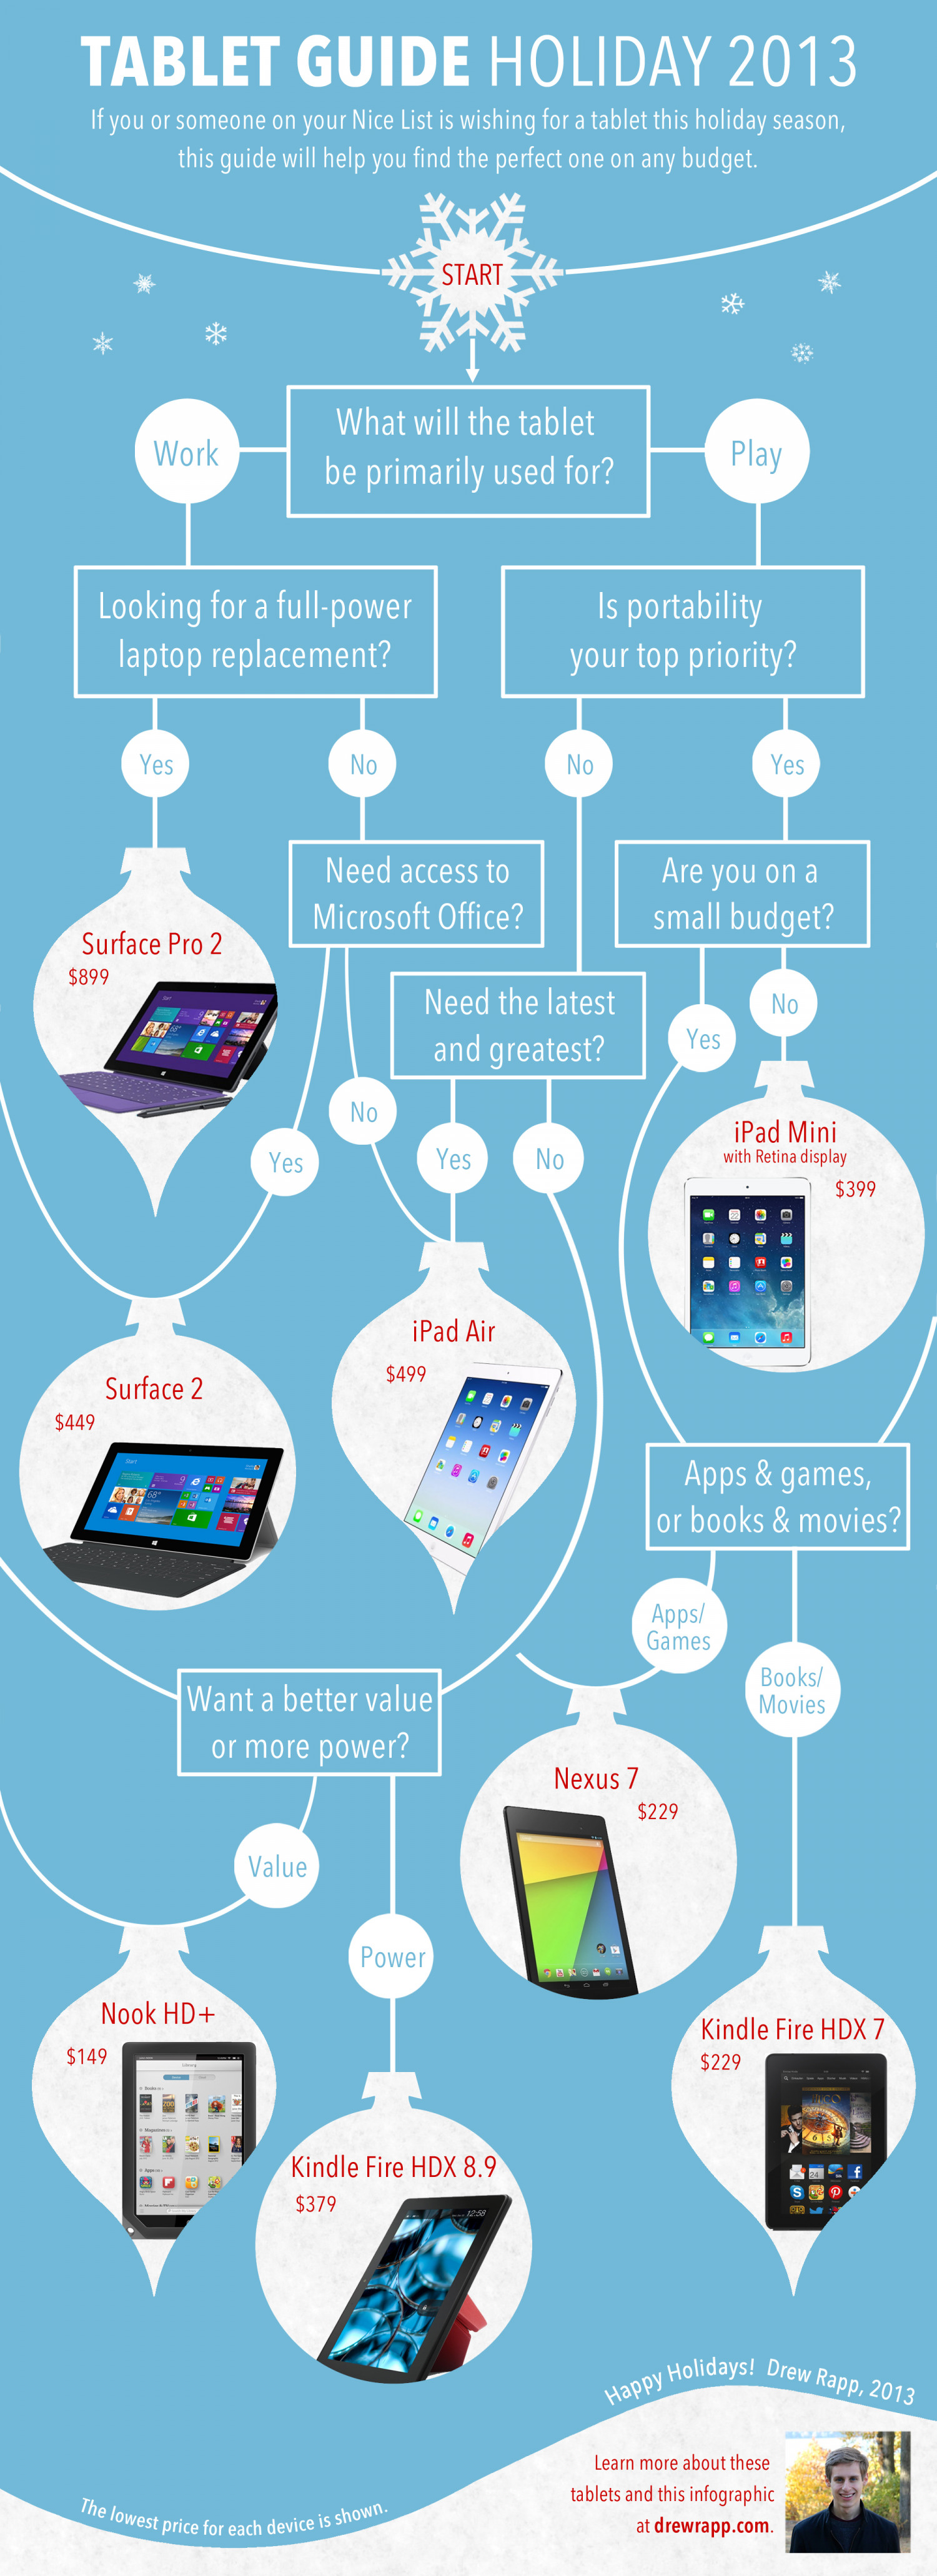 Tablet Buying Guide, Holiday 2013 Infographic